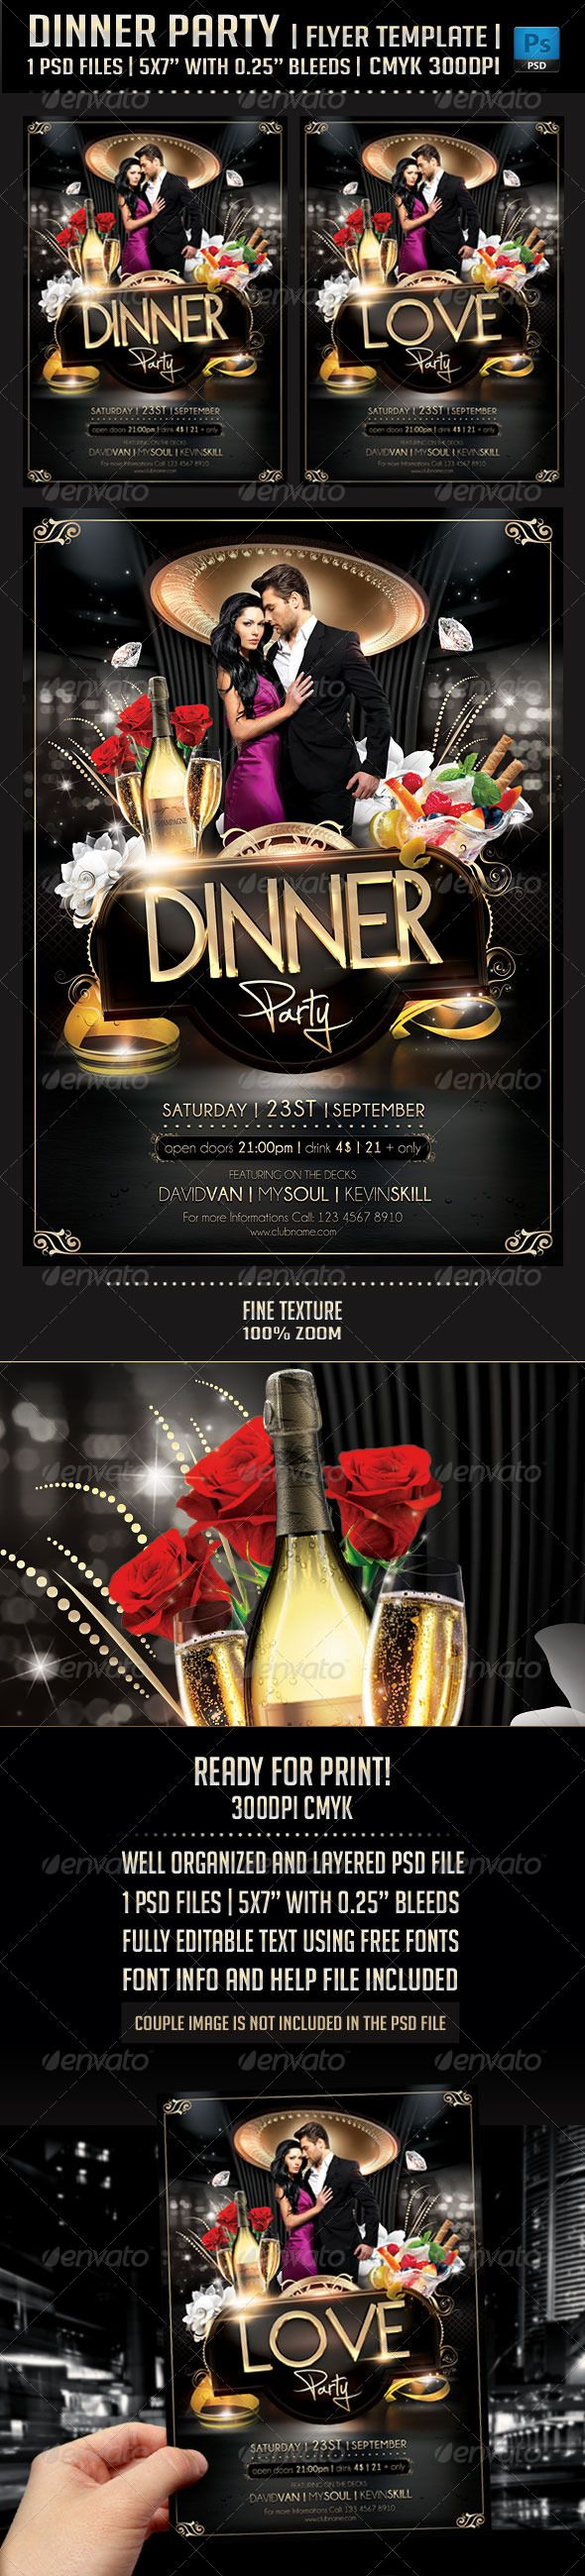 Poster design using photoshop - Dinner Party Flyer Template